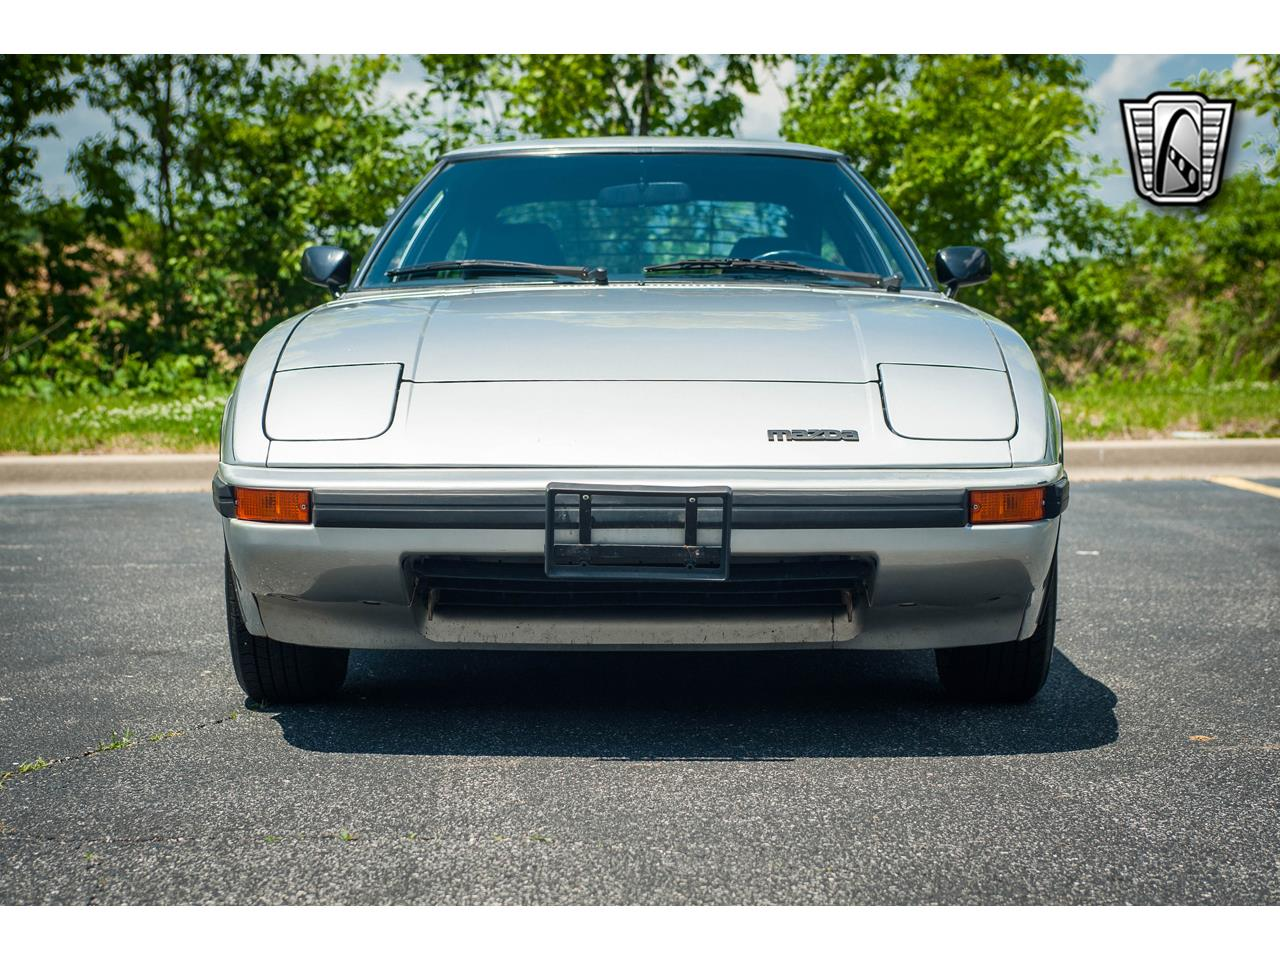 Large Picture of 1982 Mazda RX-7 Offered by Gateway Classic Cars - St. Louis - QB9V